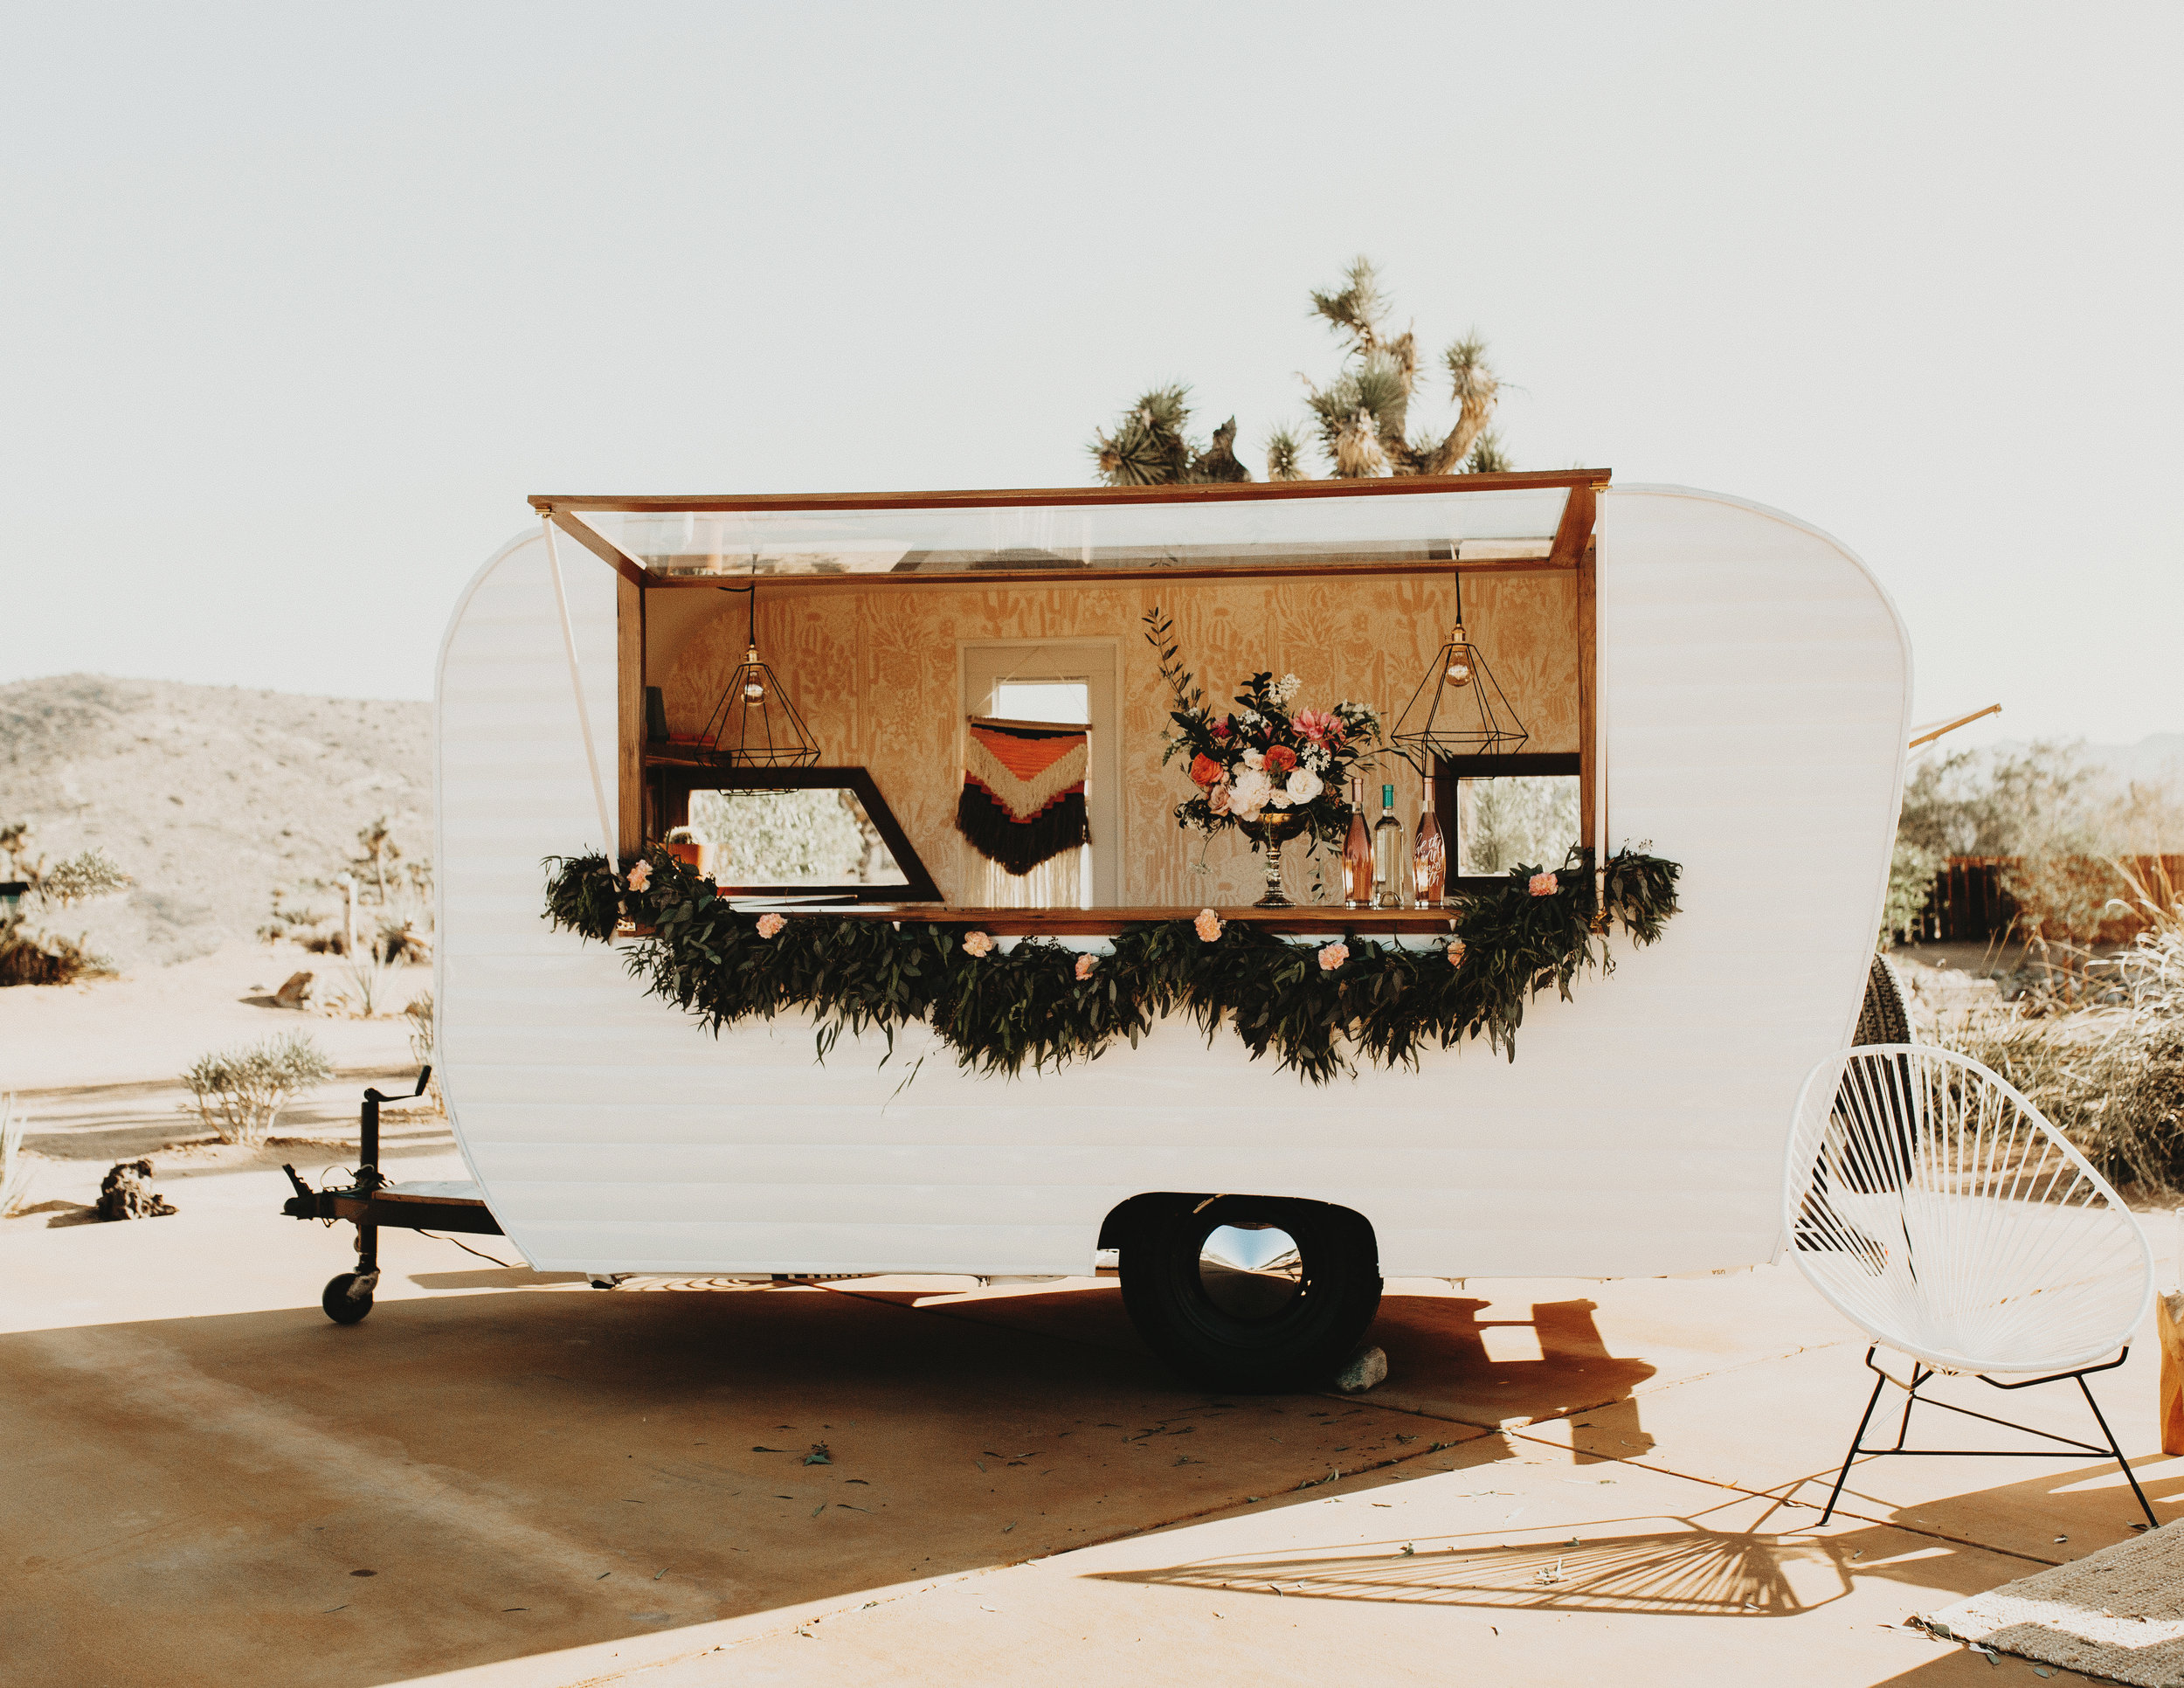 Go full party mode and rent out a cute open bar and have it parked at your Airbnb.